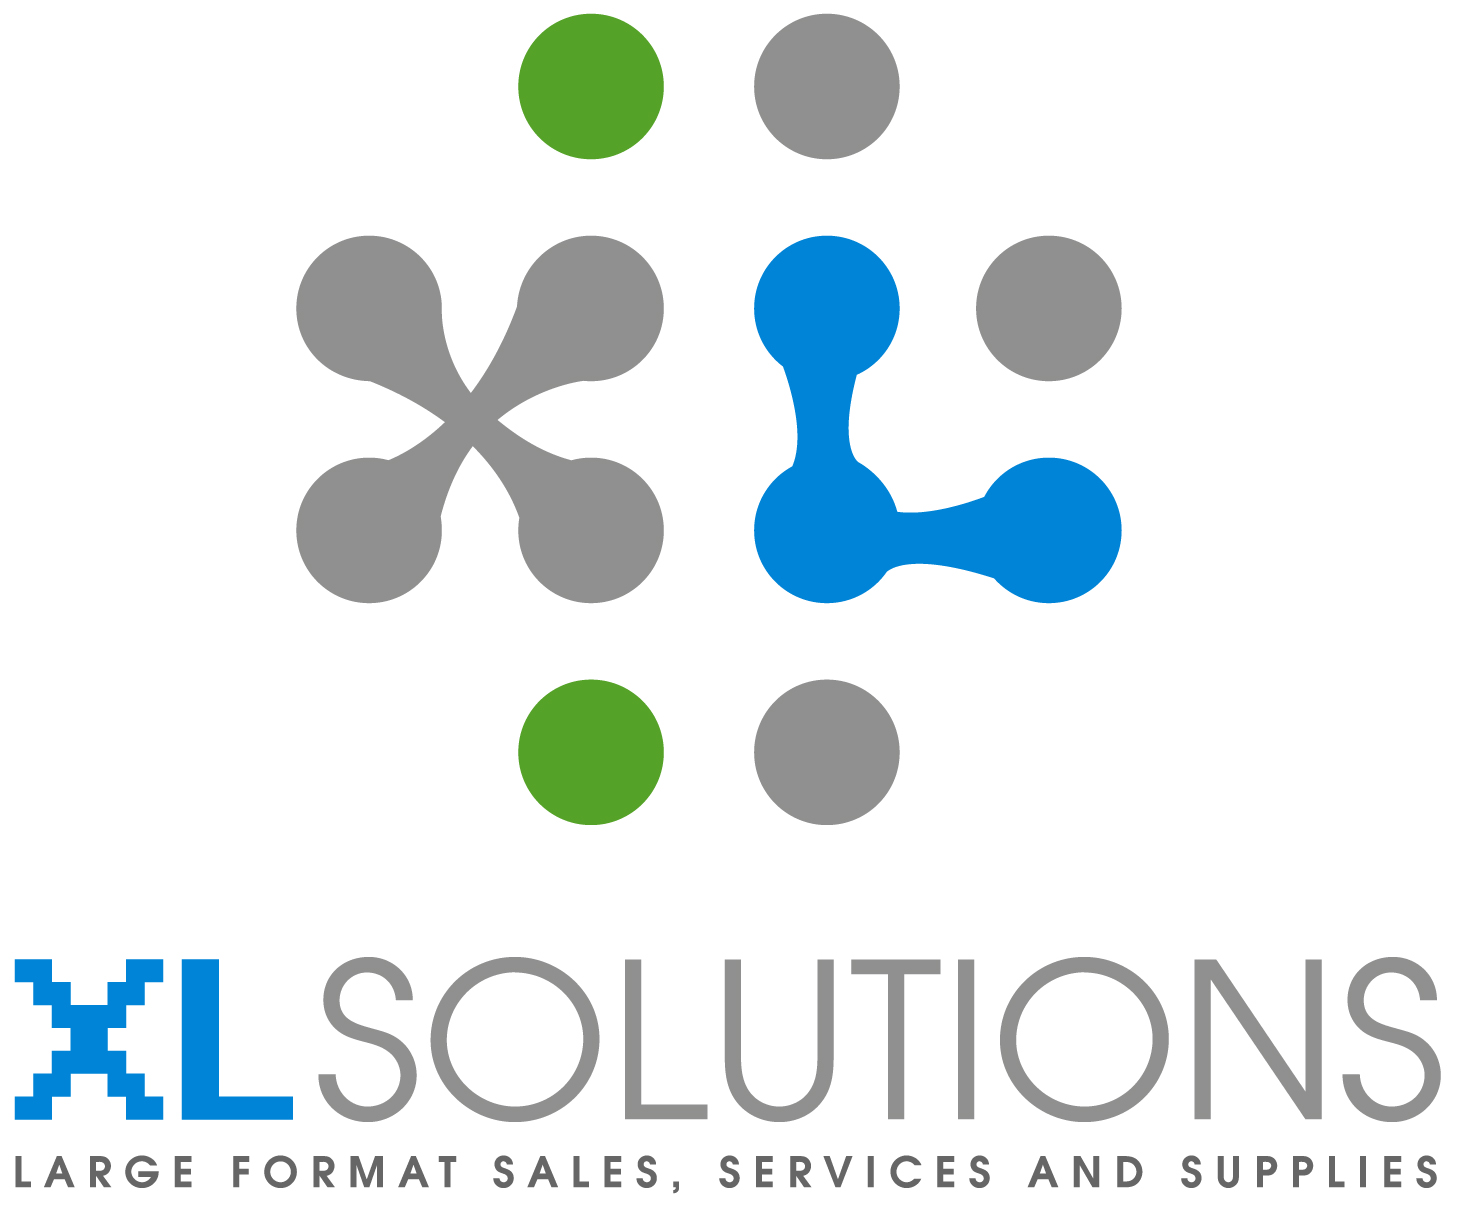 XLSolutions